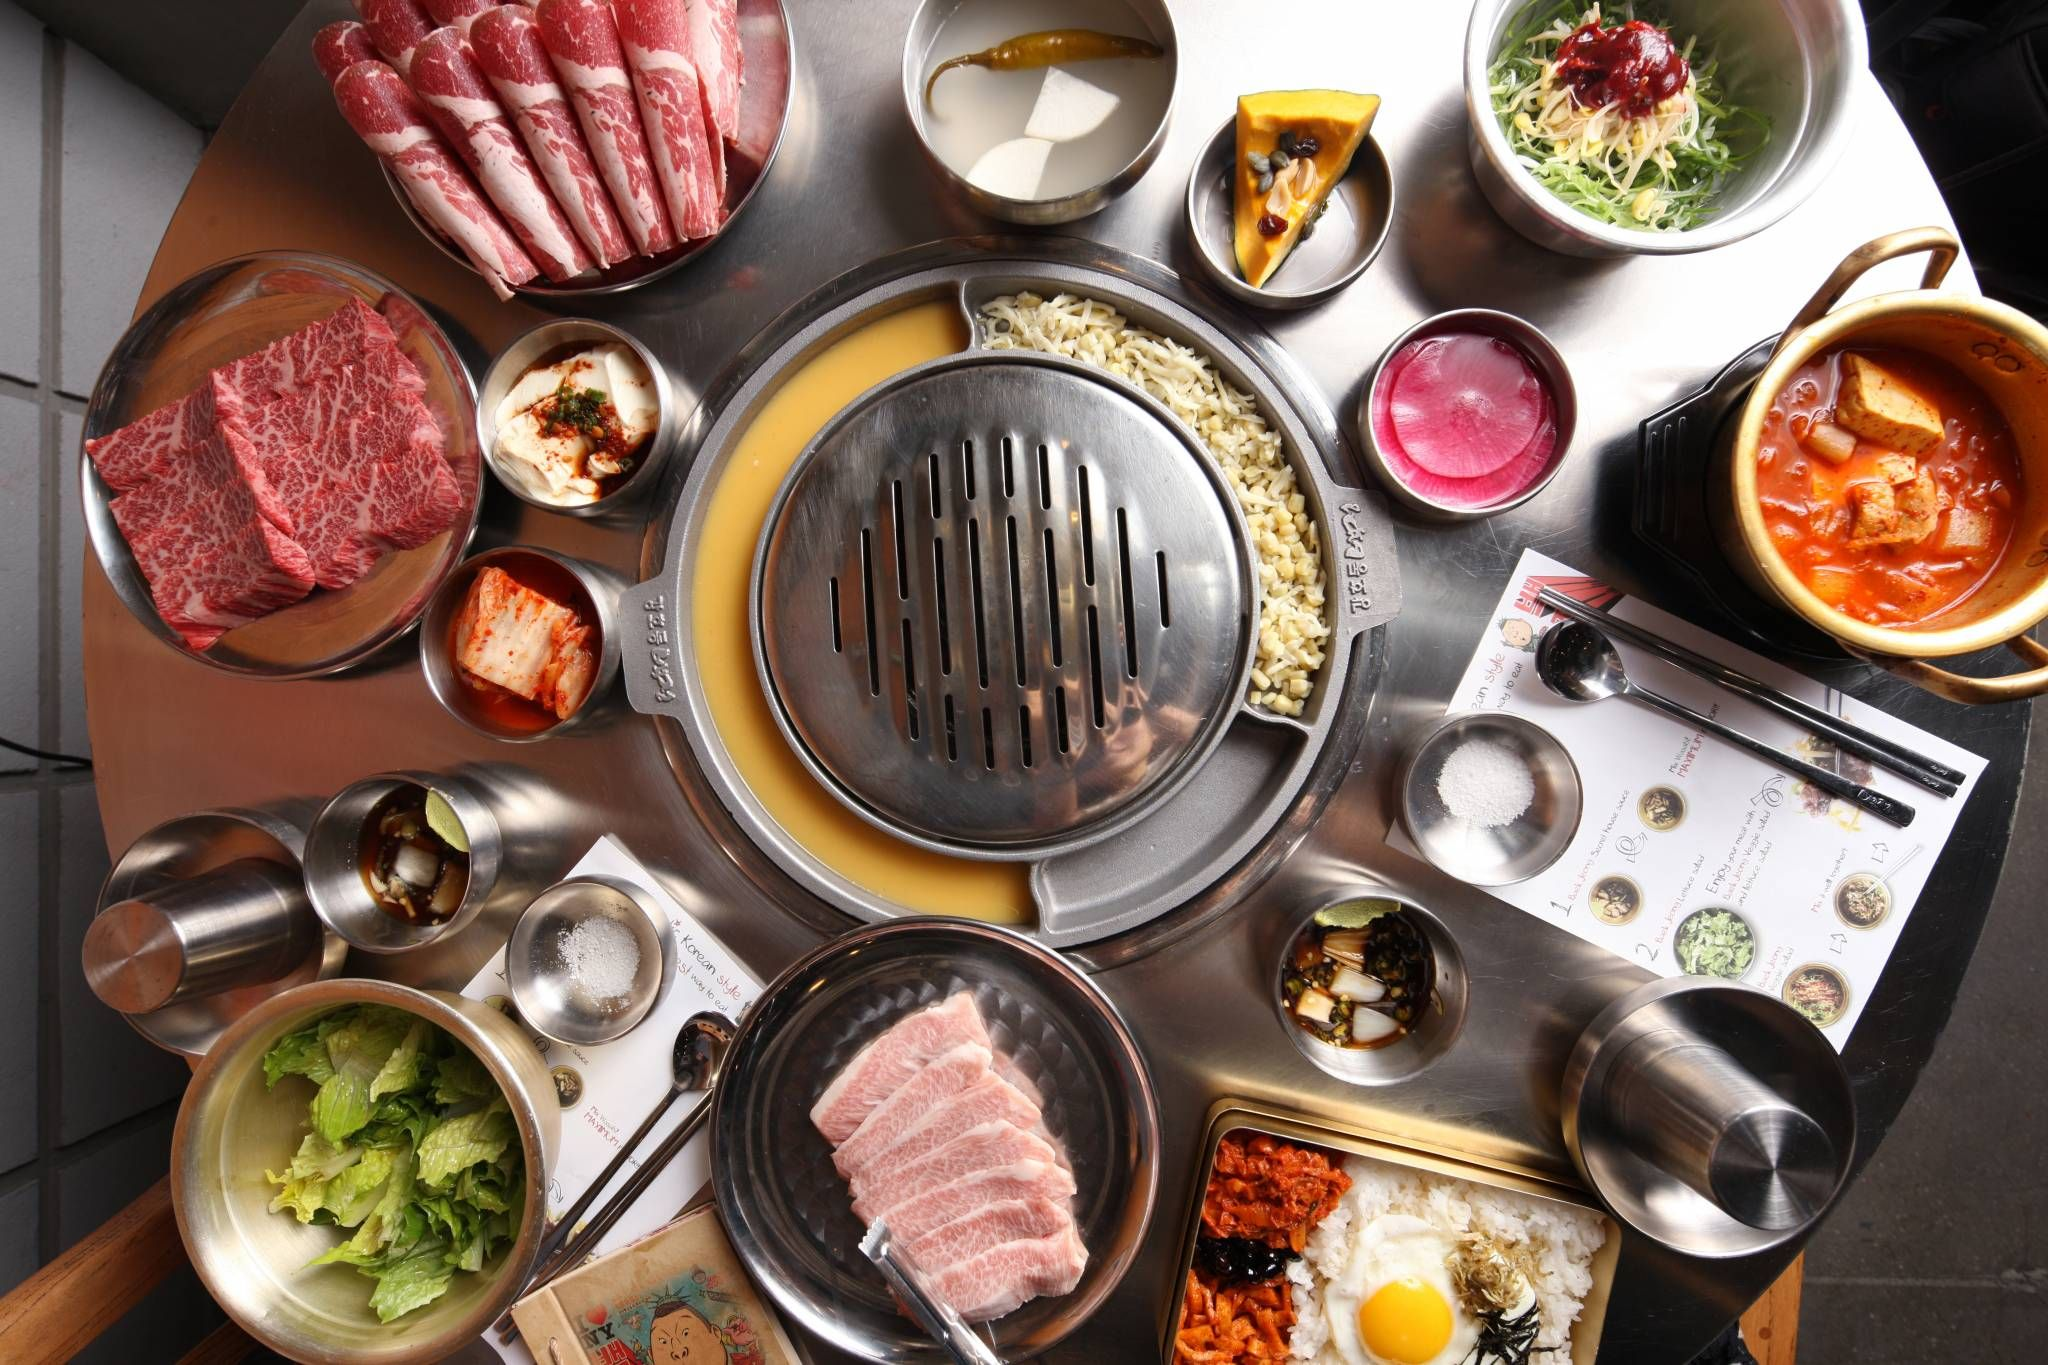 Traditional Korean Bbq Table In Addition To Various Garnishes The Ingredients Include Thinly Sliced Brisket Food Healthy Food Delivery Korean Bbq Restaurant